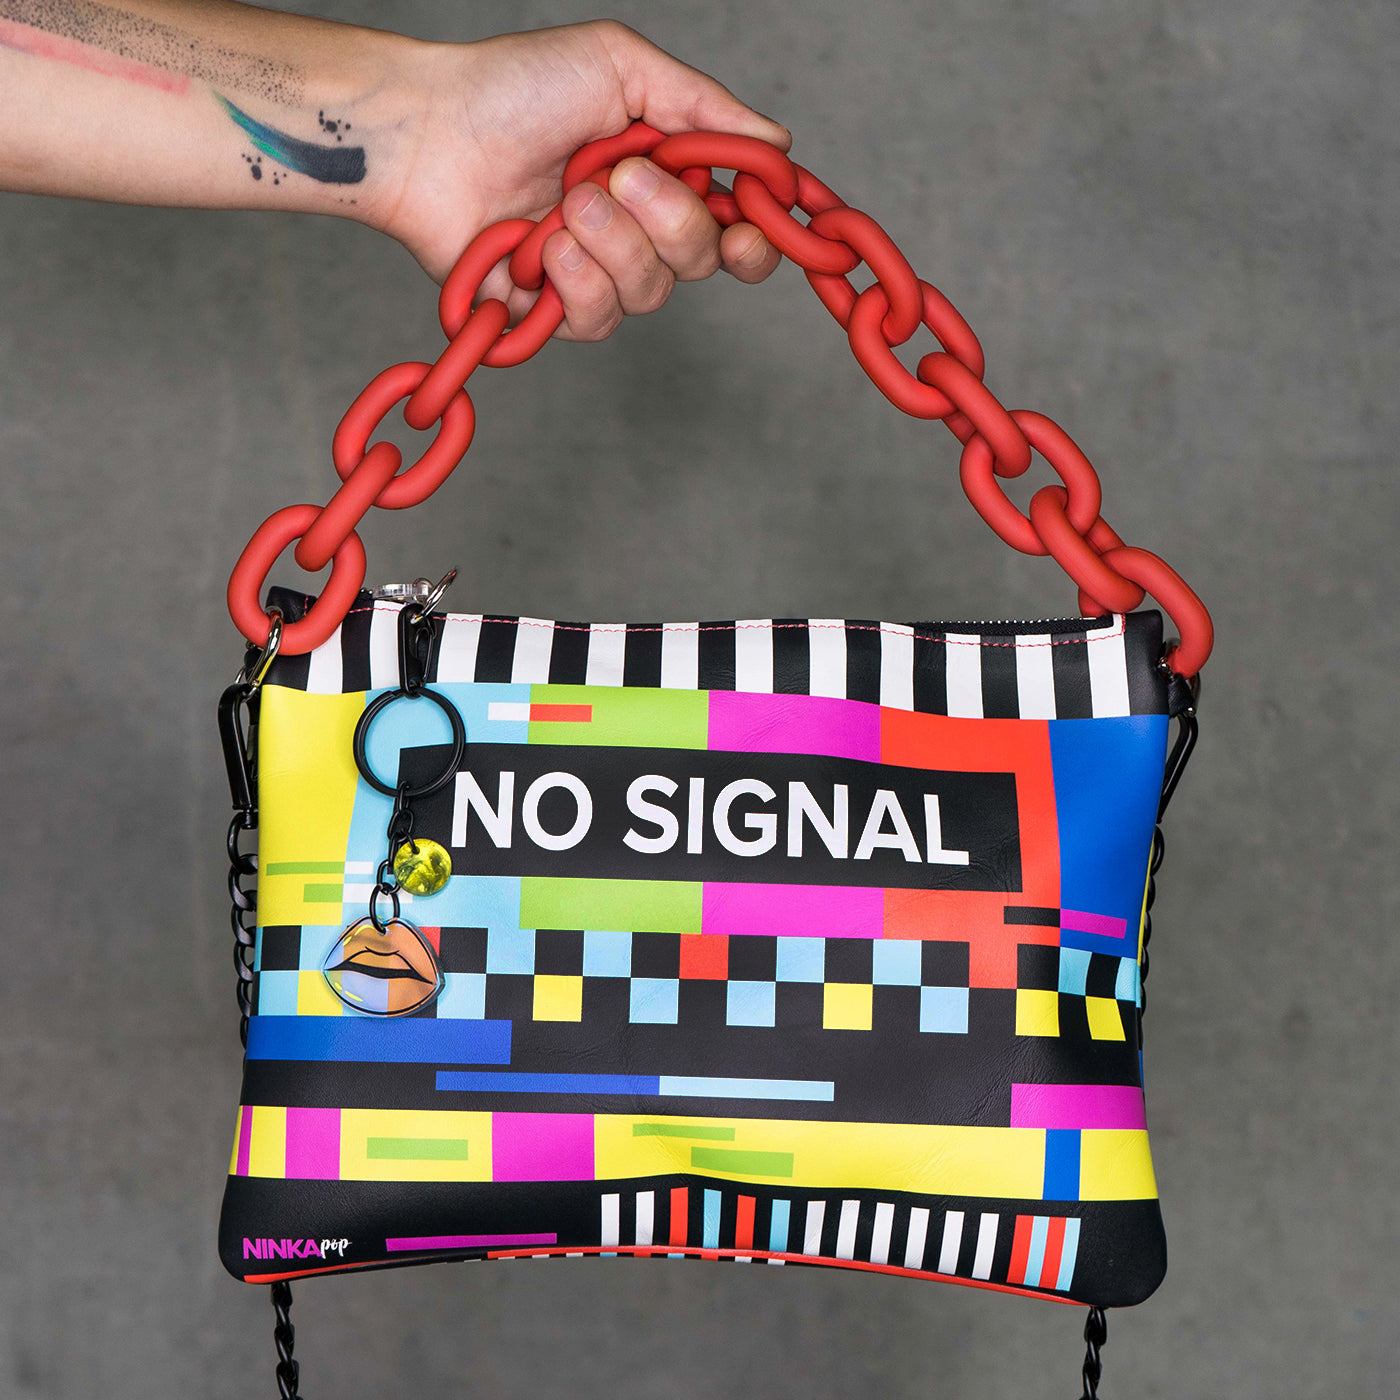 No Signal leather purse PRE-ORDER (red chain)